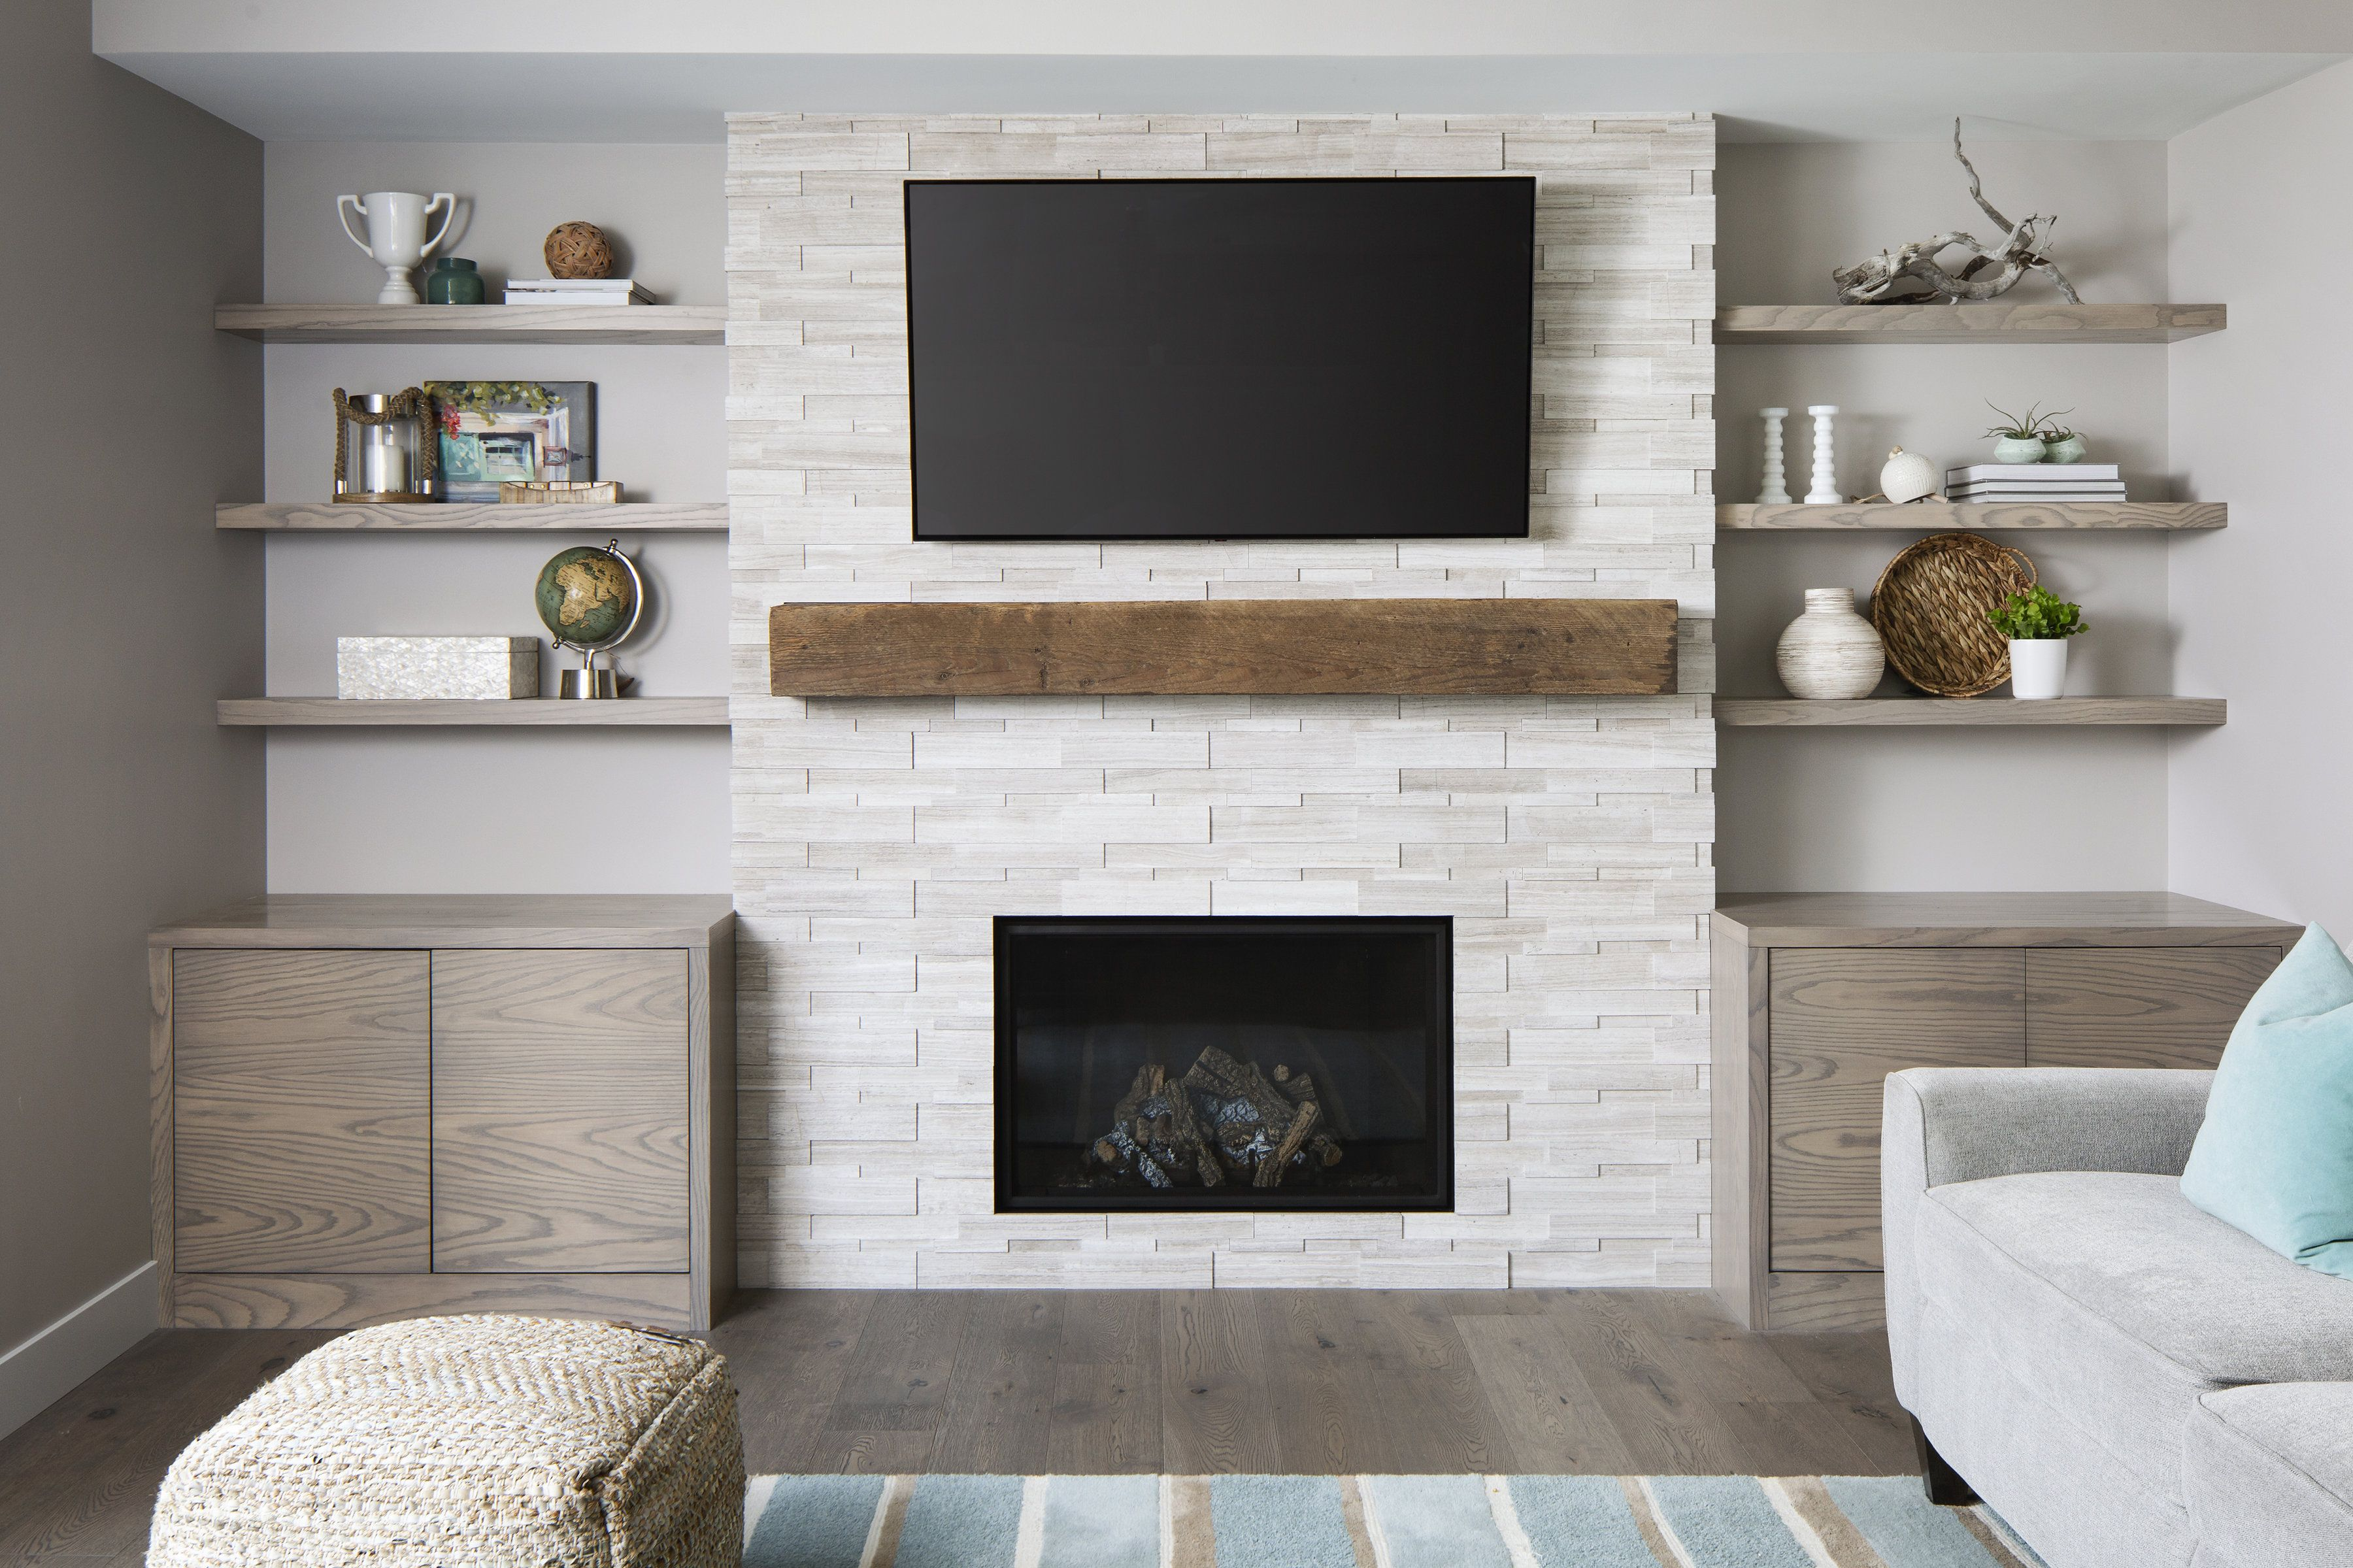 Homepage In 2020 Feature Wall Living Room Fireplace Shelves Built In Shelves Living Room